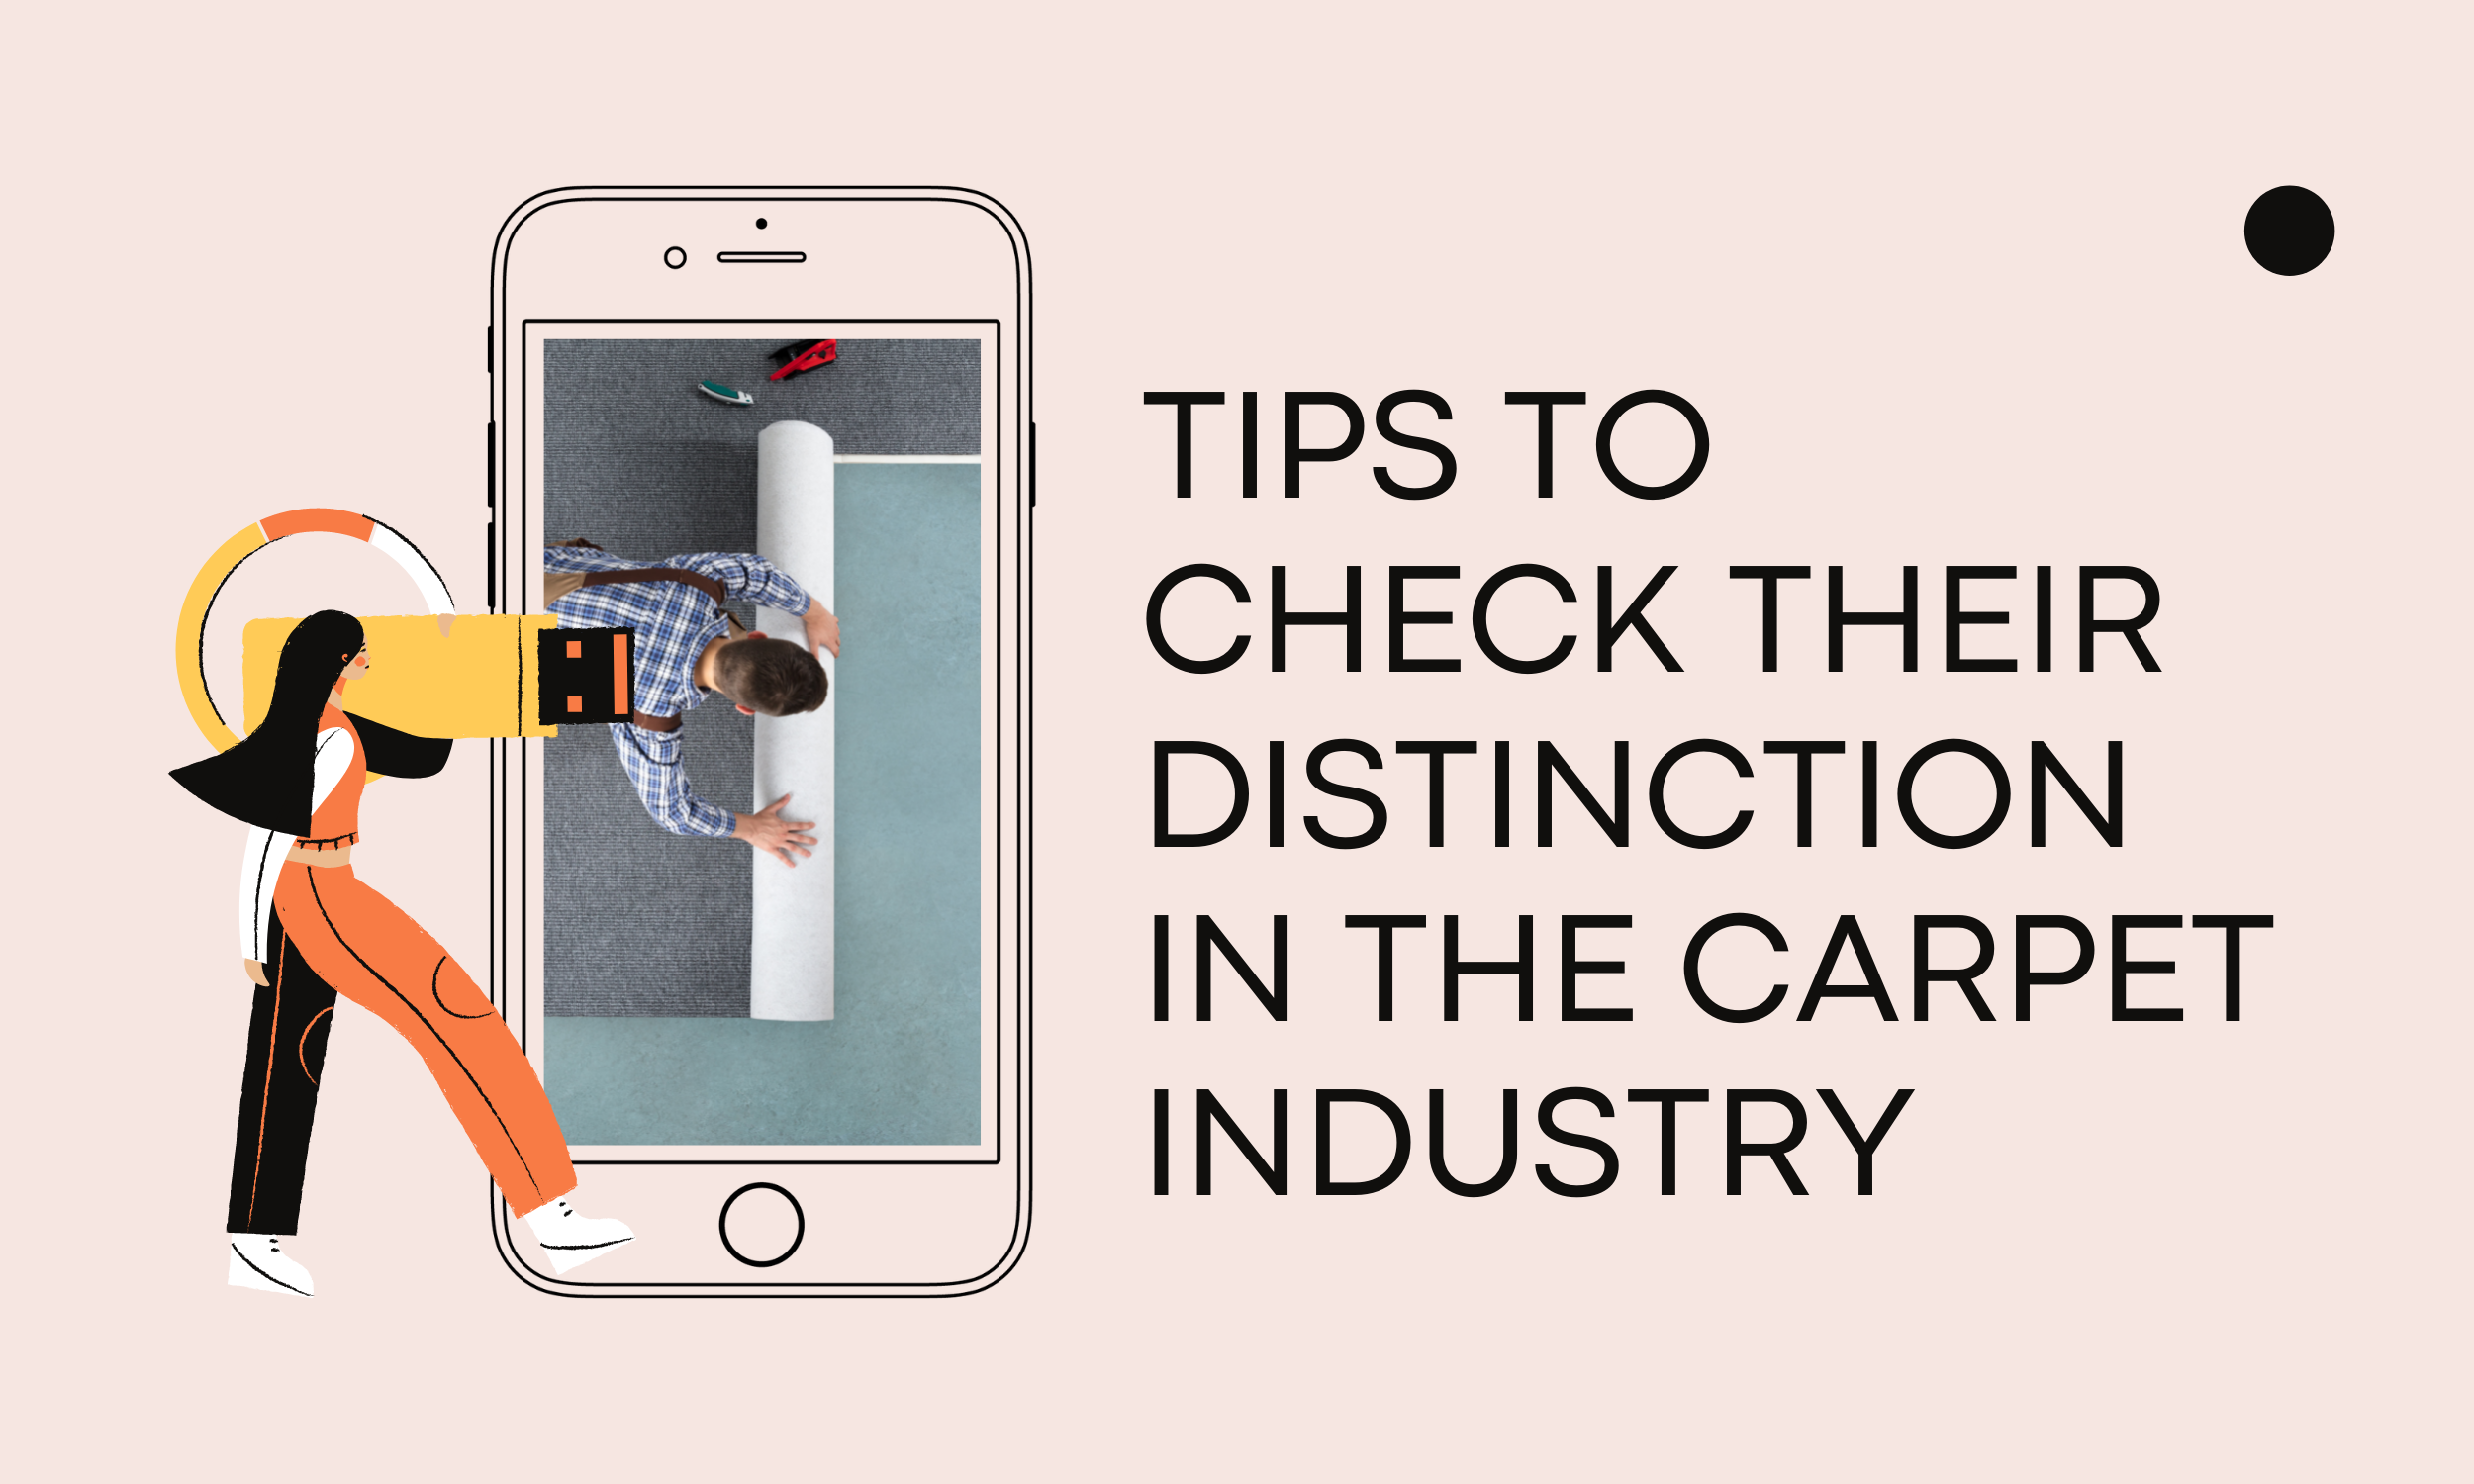 Tips-to-Check-their-Distinction-in-the-Carpet-Industry